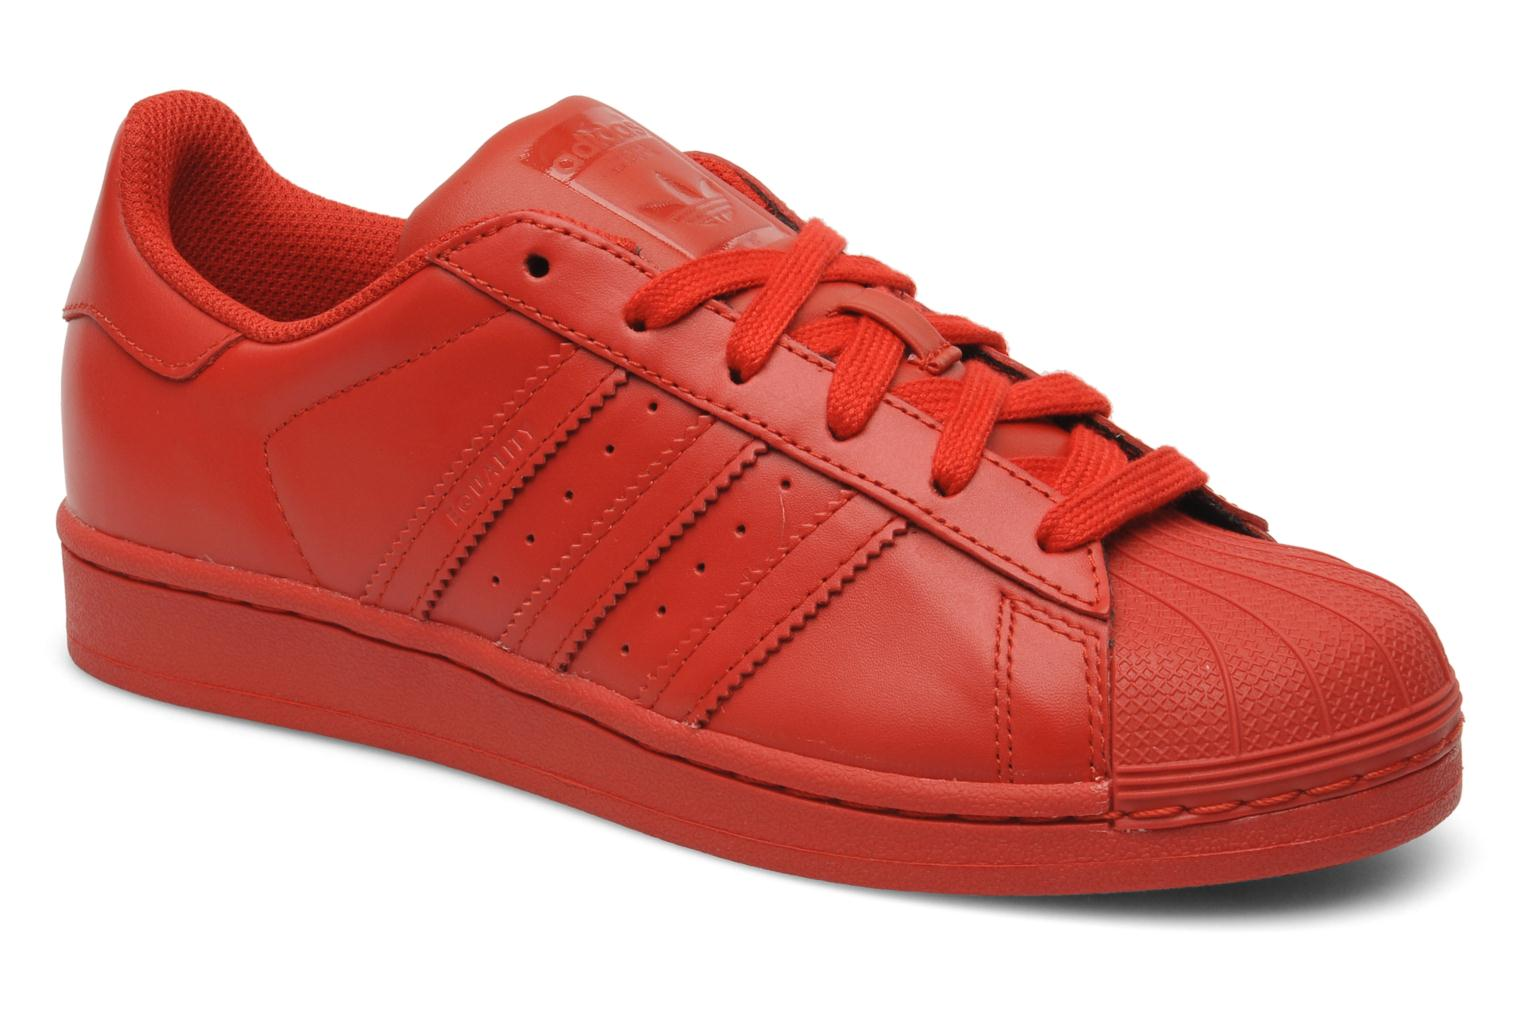 adidas superstar supercolor rood